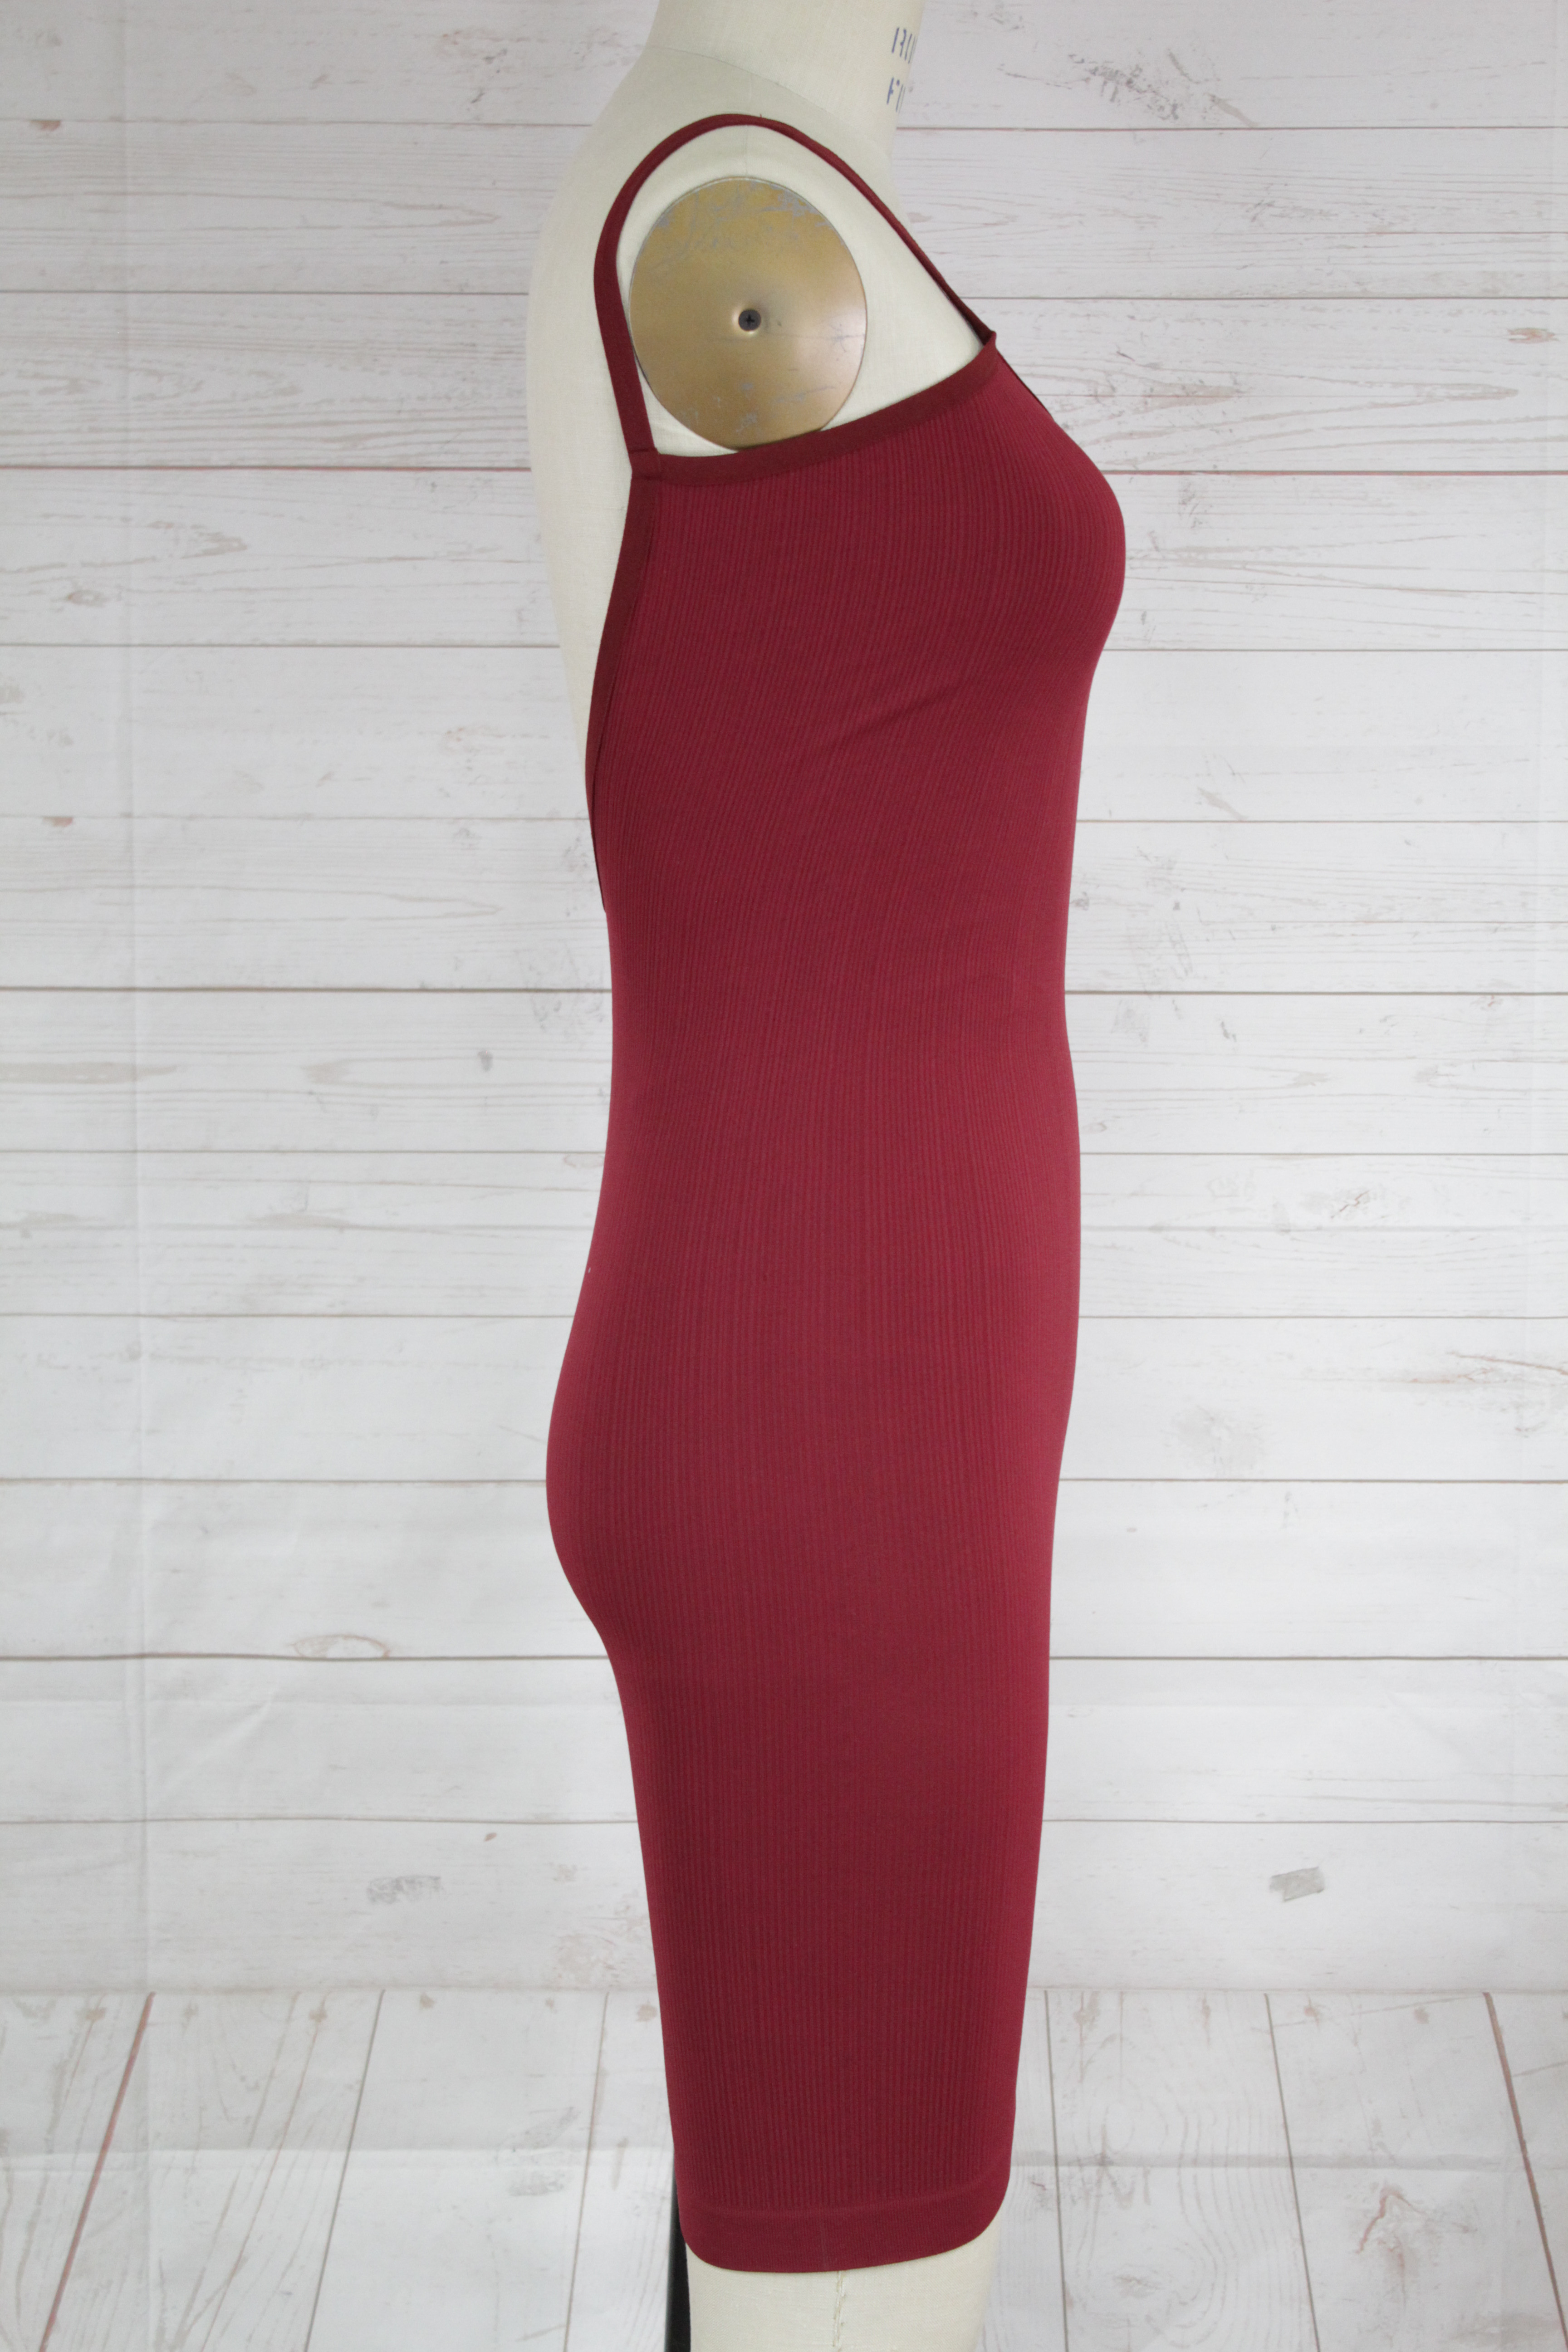 New-Free-People-Womens-Intimate-Seamless-Ribbed-Bodycon-Mini-Slip-Dress-Red-Xs-S thumbnail 3